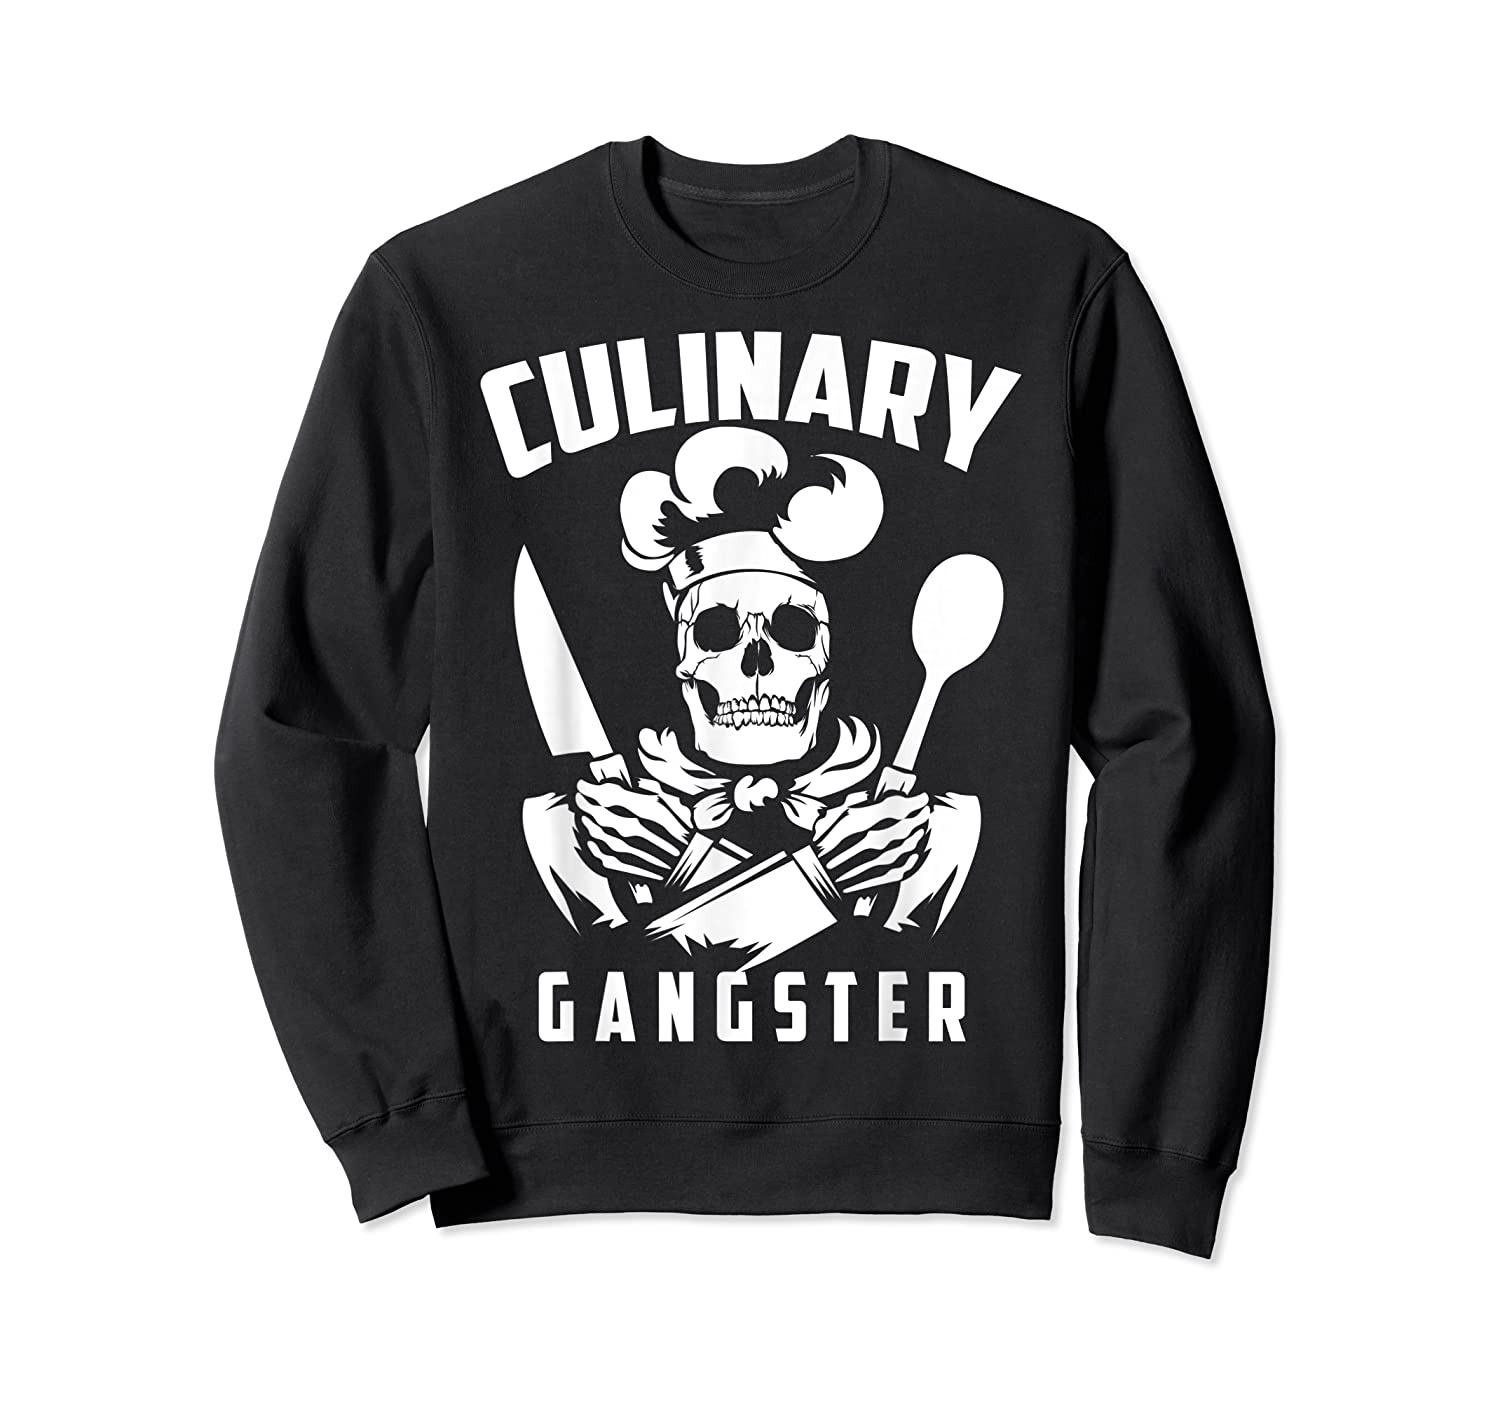 Cool Culinary Gangster T Shirt Gift For Pro Cooking Master Crewneck Sweater